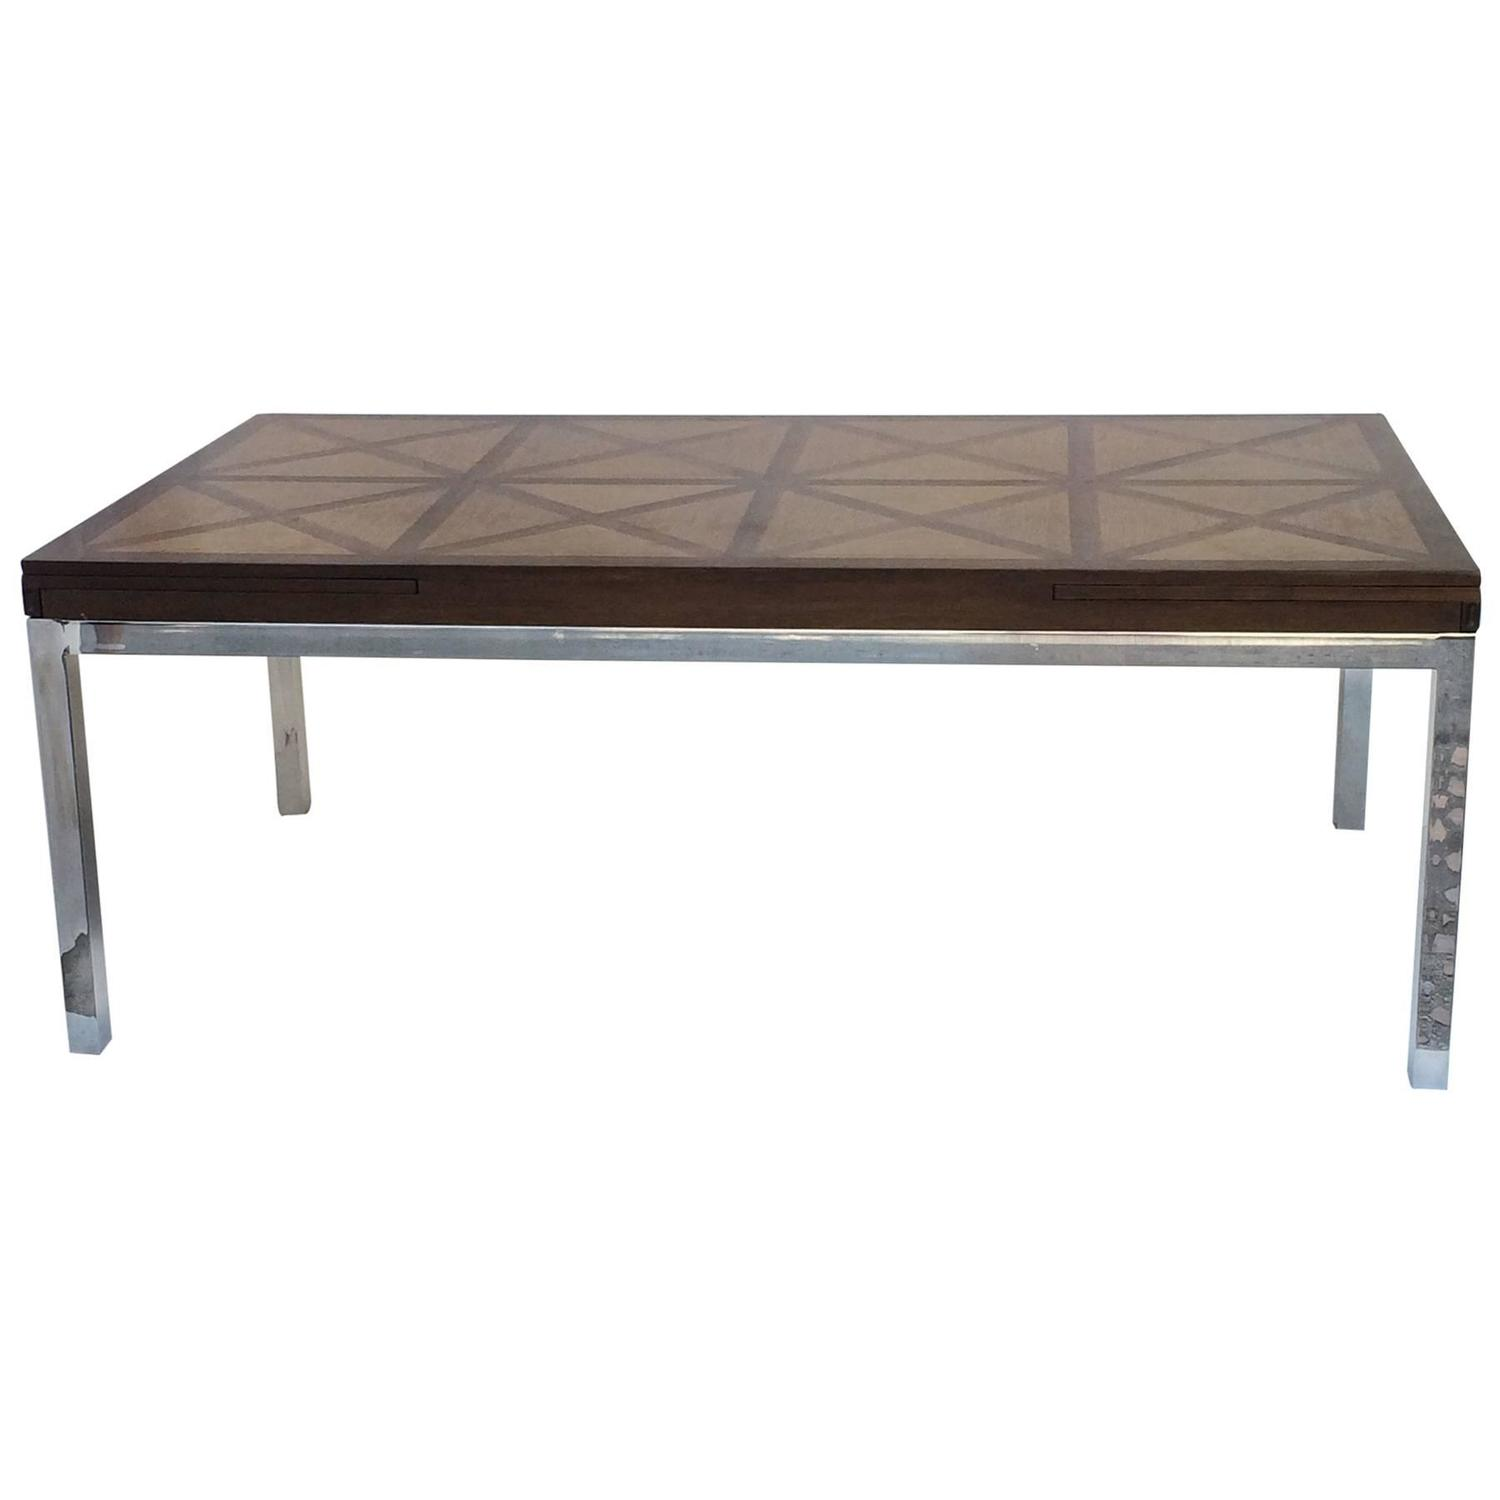 Parquetry Inlaid Wood Dining Table Chrome Base For Sale at  : 5092073z from www.1stdibs.com size 1500 x 1500 jpeg 49kB